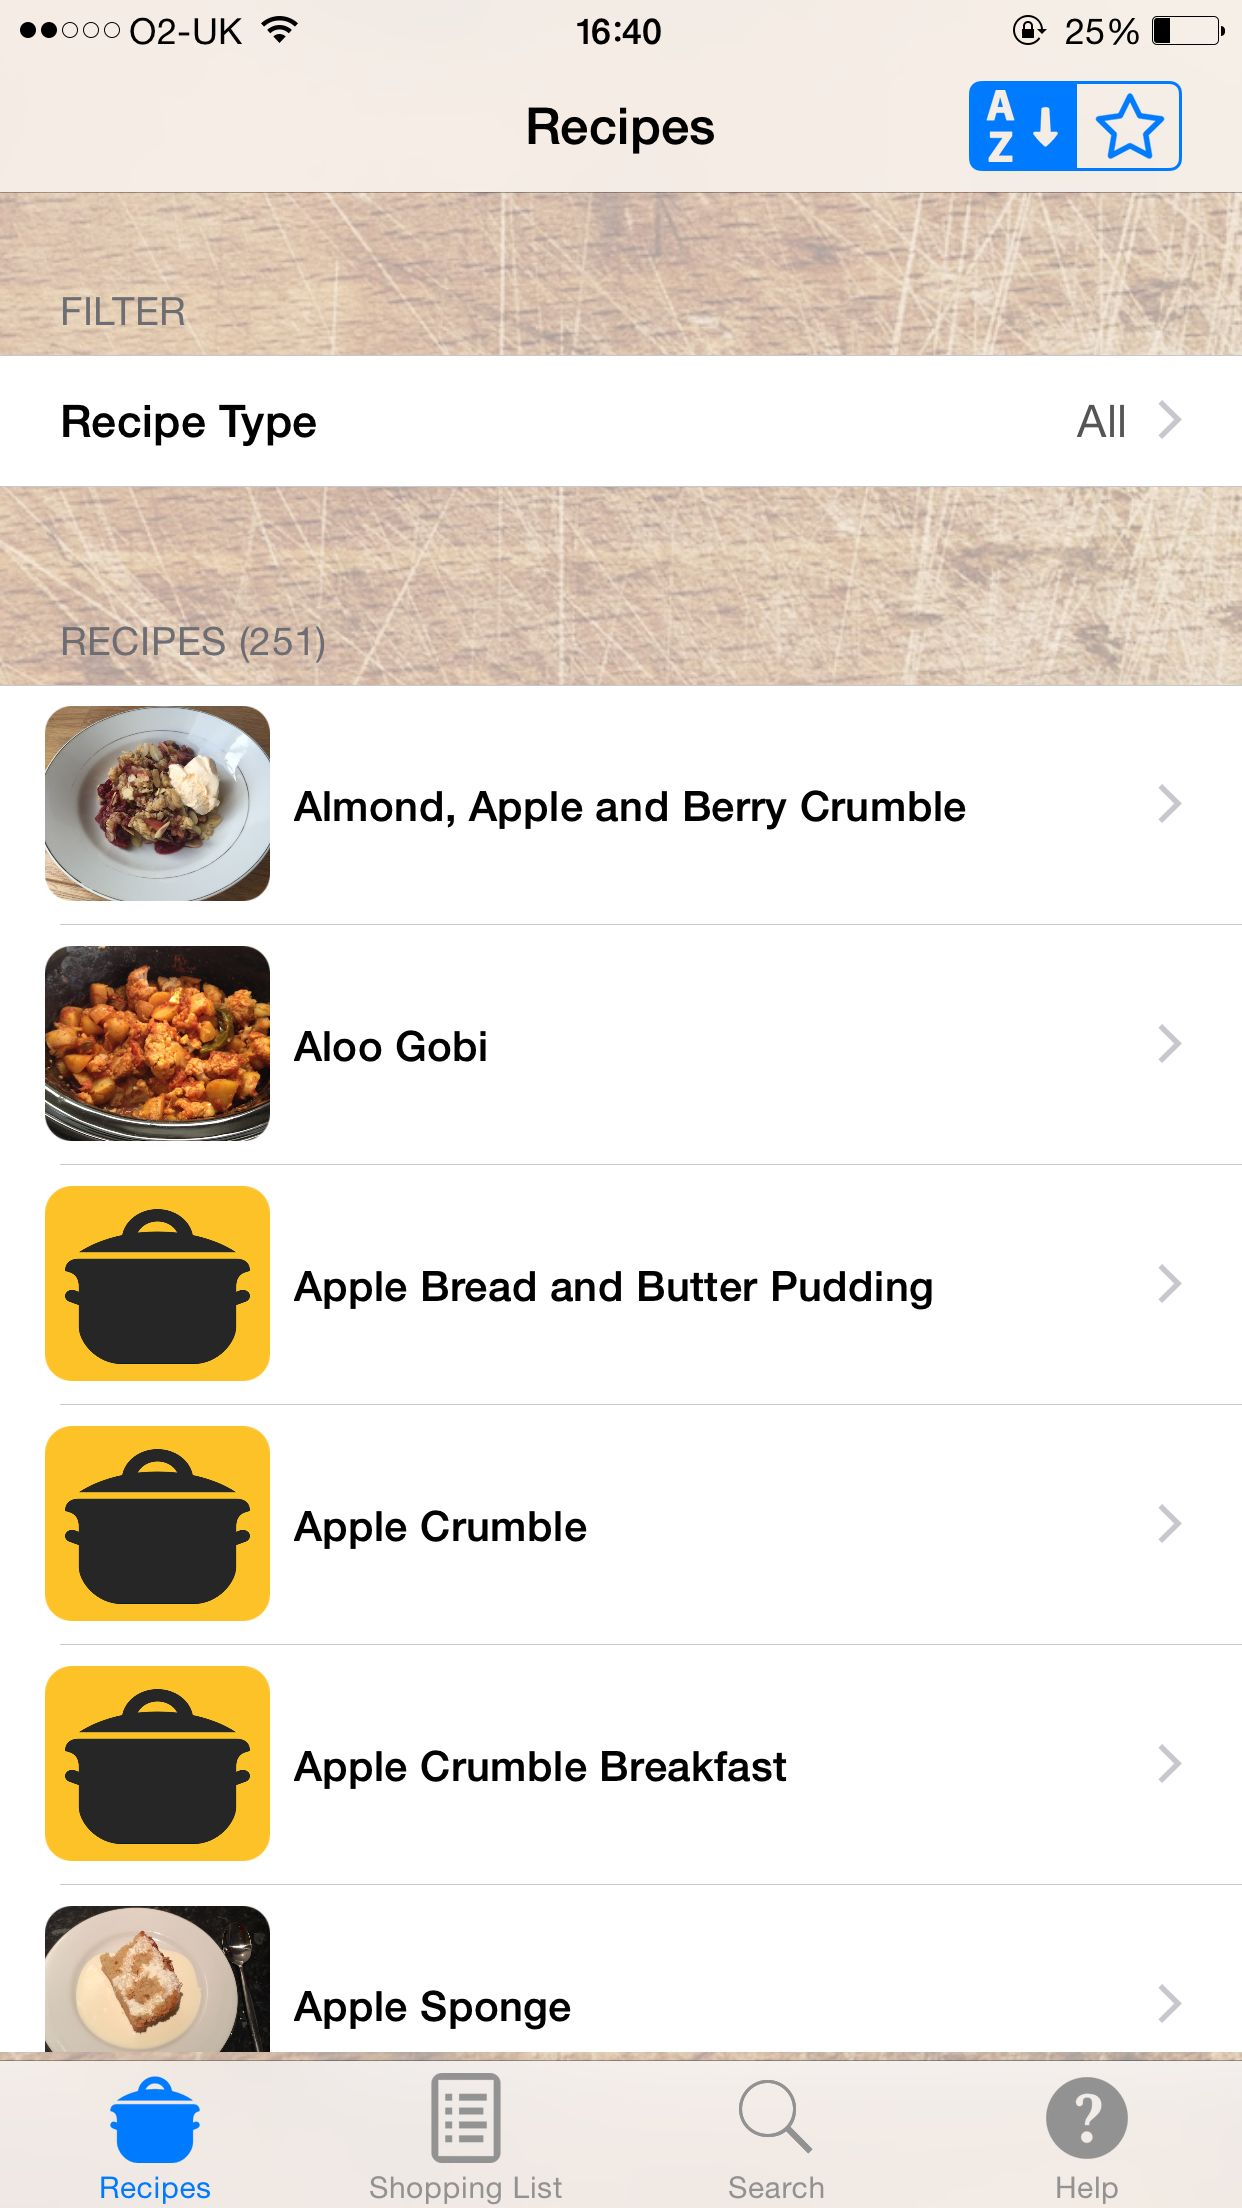 252 Slow cooker crock pot recipes app for the iPhone and